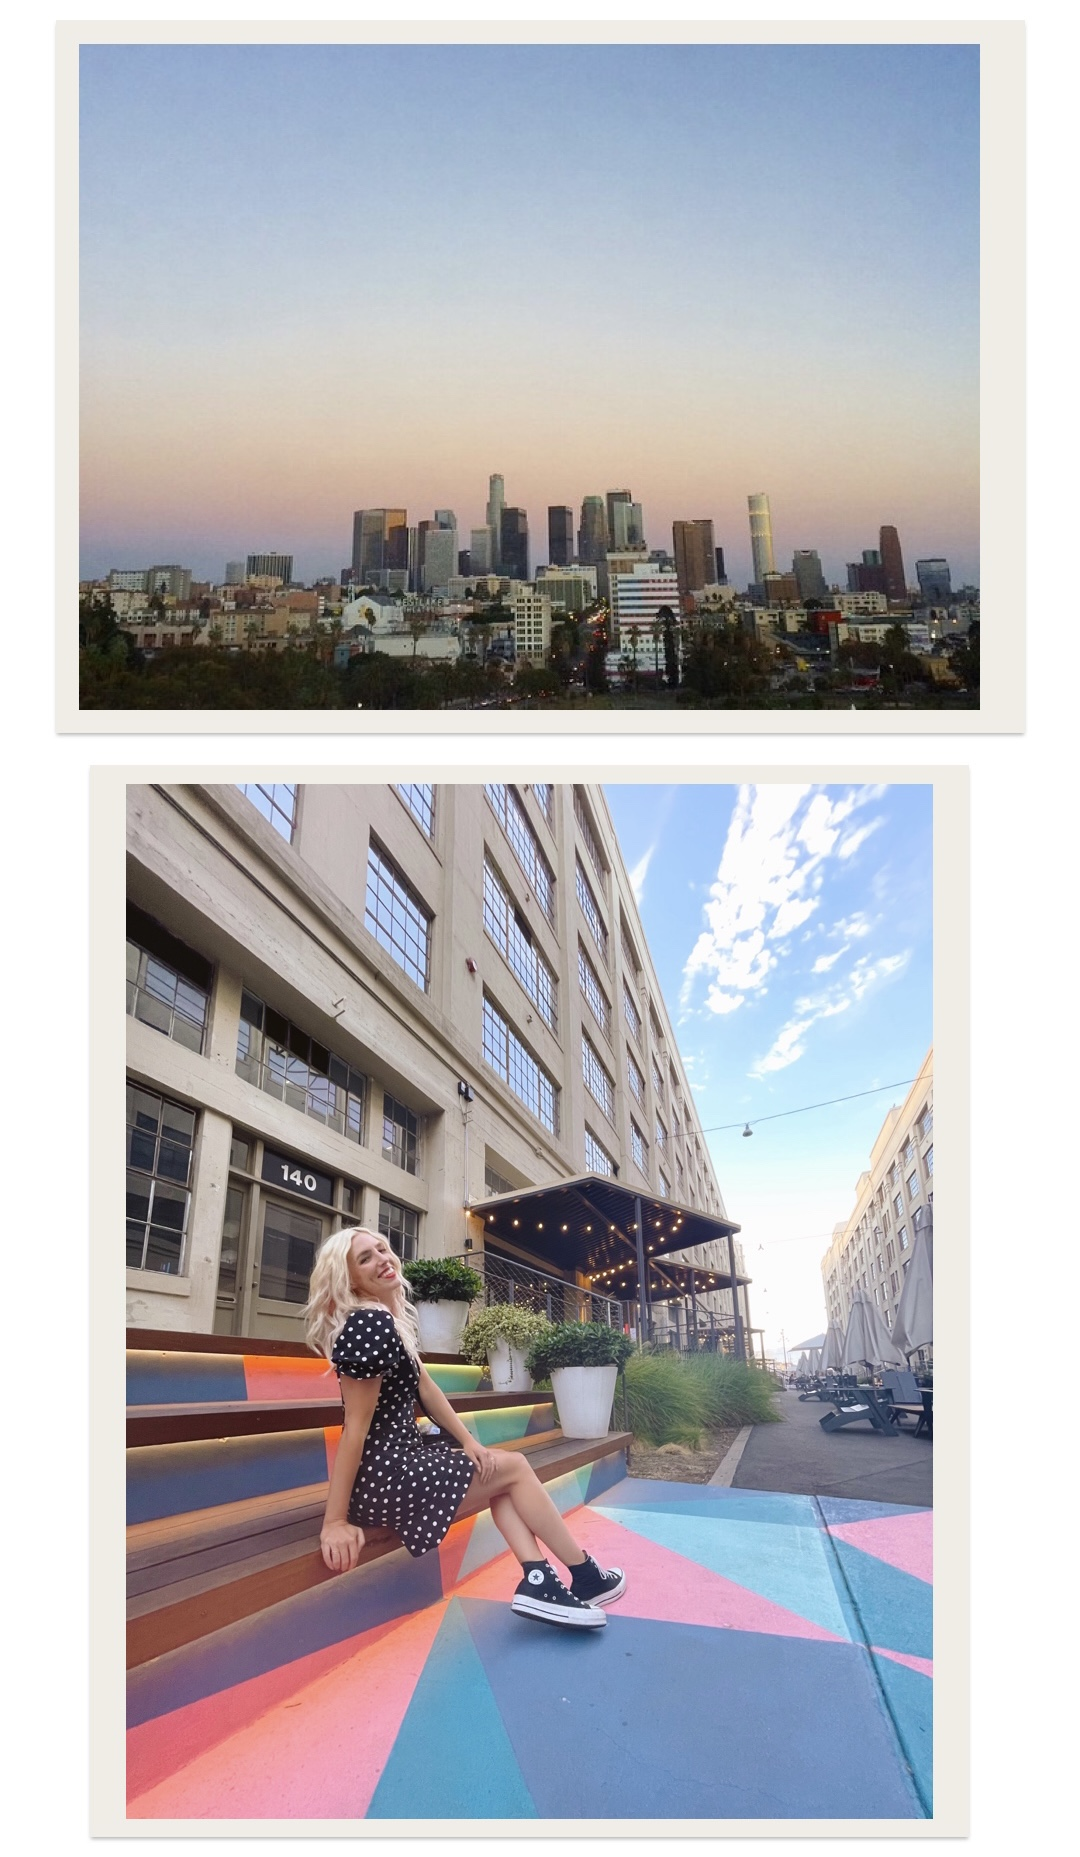 collage of woman showing the best places to visit in DTLA